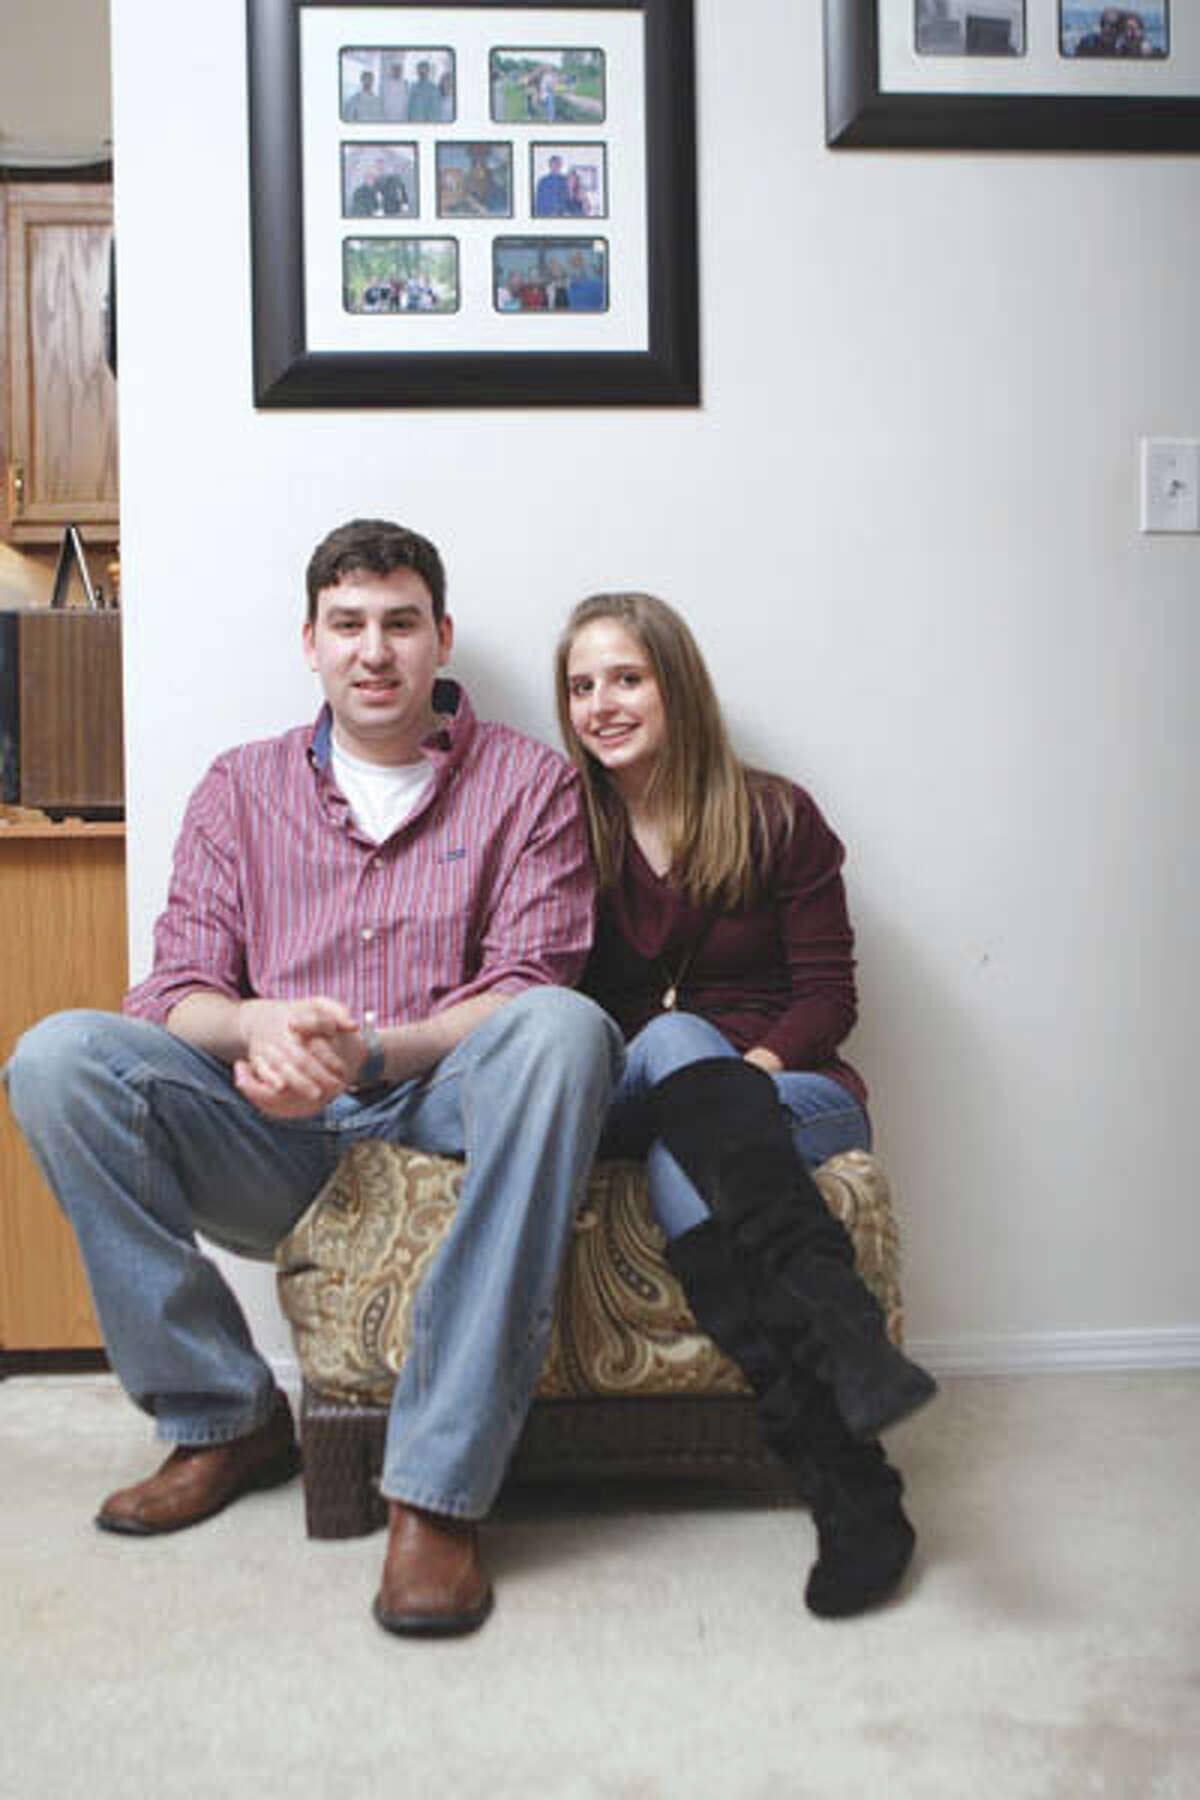 Grizzaffi shares a small apartment in Delmar with his high school sweetheart, Meredith Freebern. (Suzanne Kawola/Life@Home) Click here to read the story.